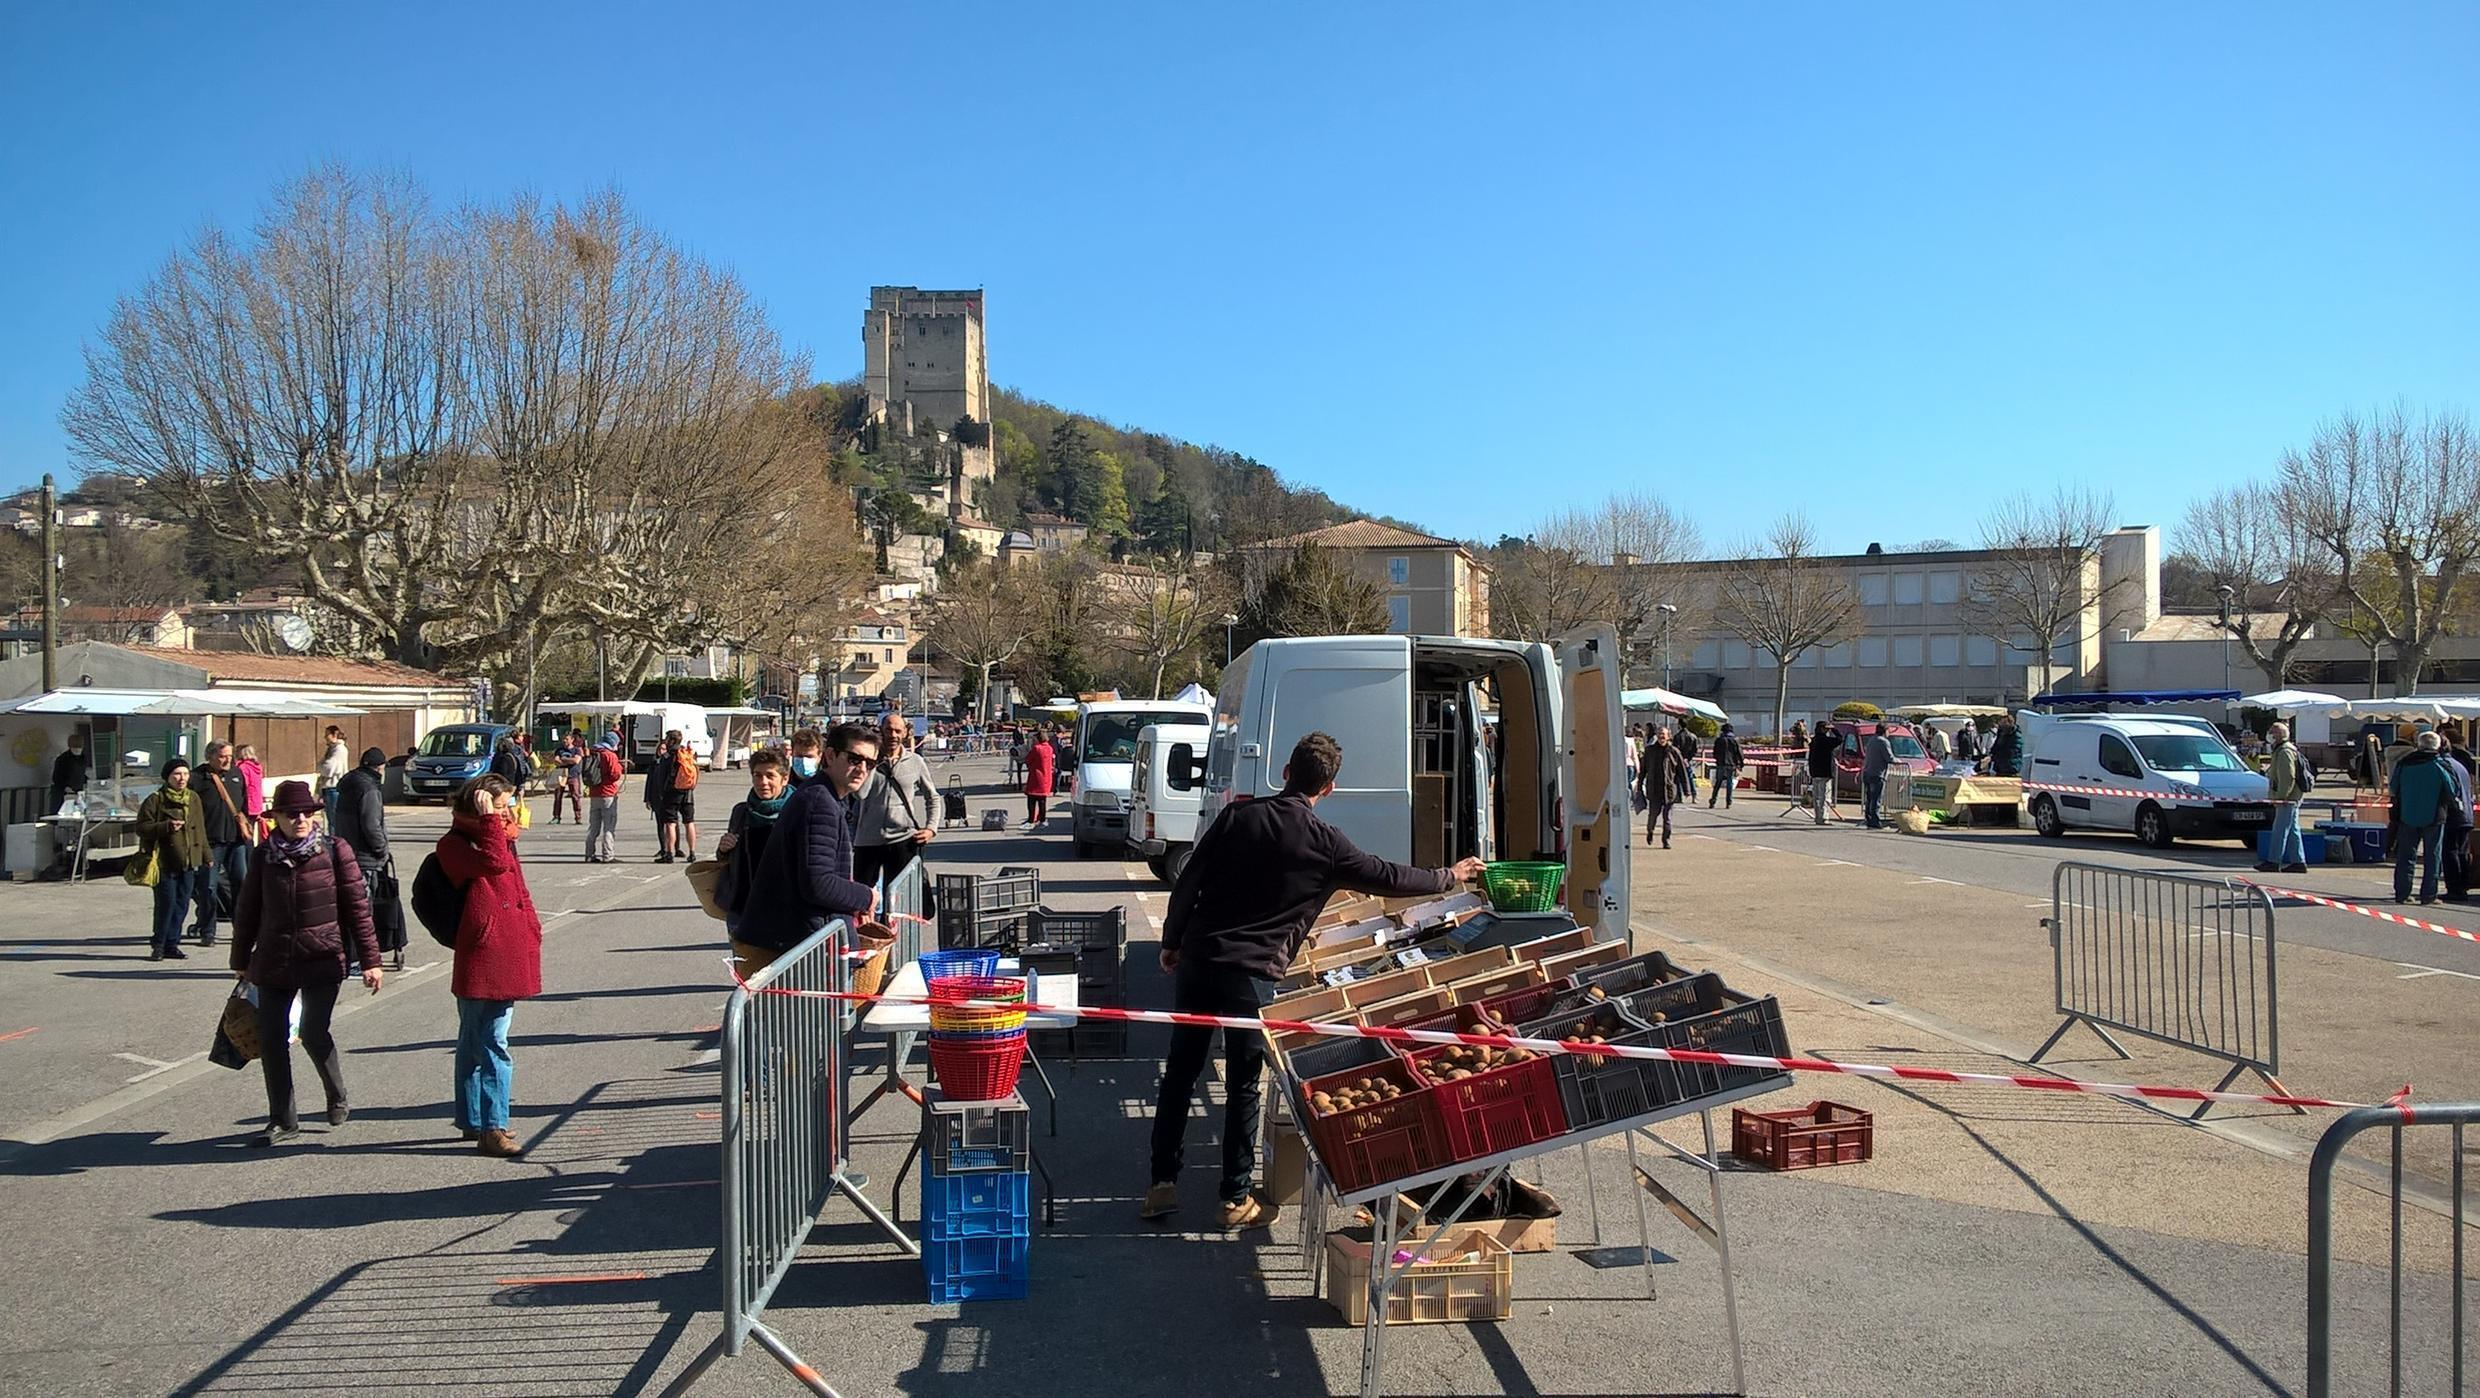 Crest's street market has moved to the large Champ de Mars Square where social distancing rules can be applied.